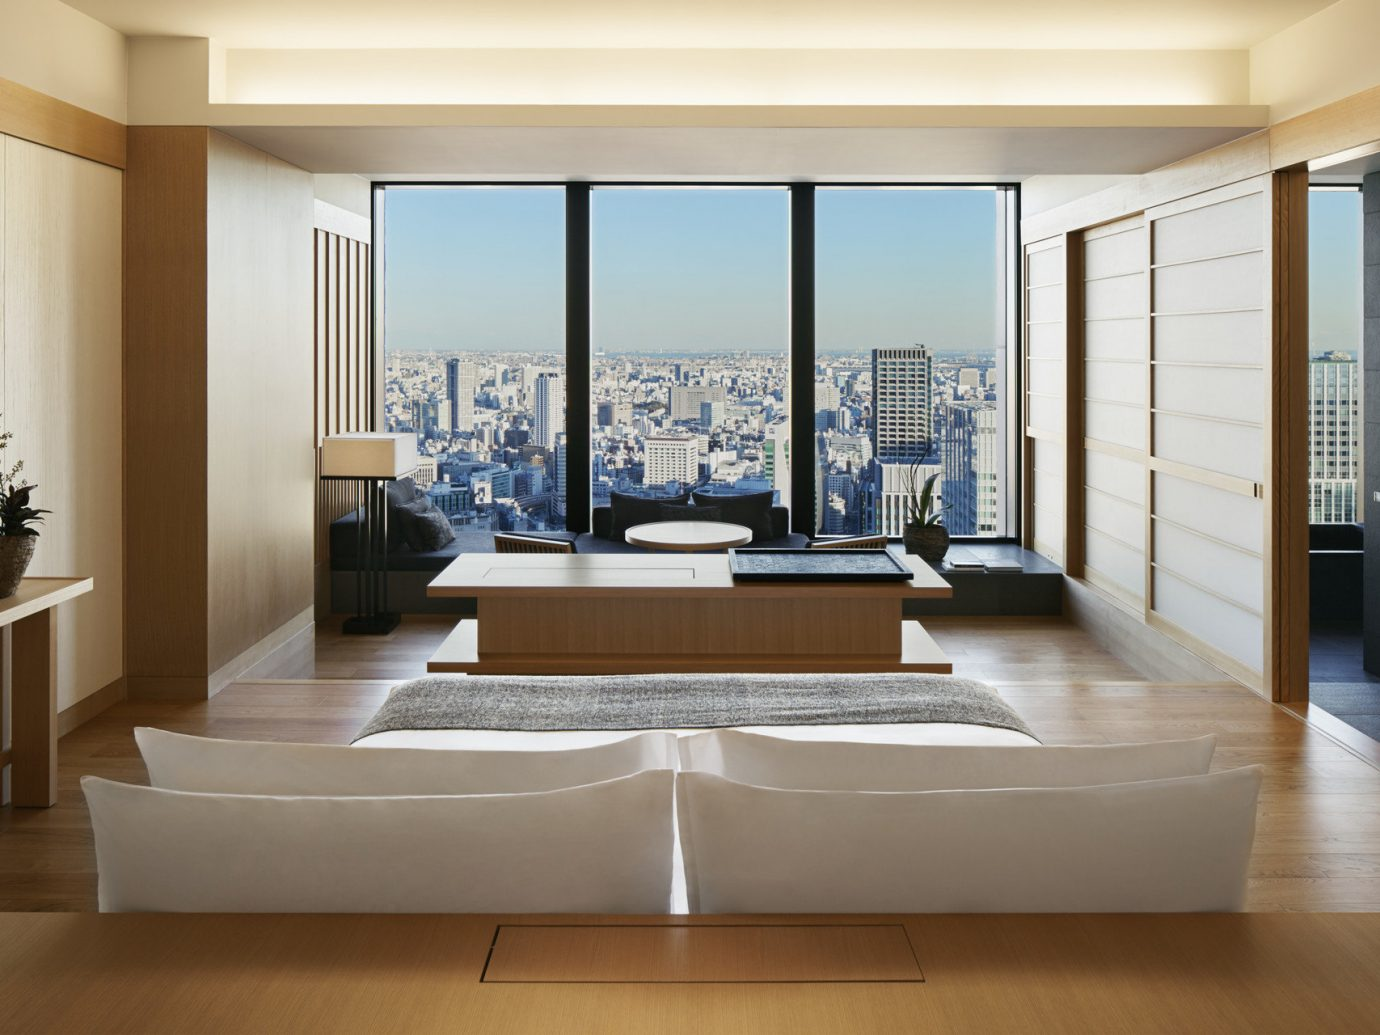 Hotels Japan Tokyo floor indoor wall window ceiling building room property living room interior design estate home condominium real estate Suite Design furniture apartment tub Modern wood bathtub Bath